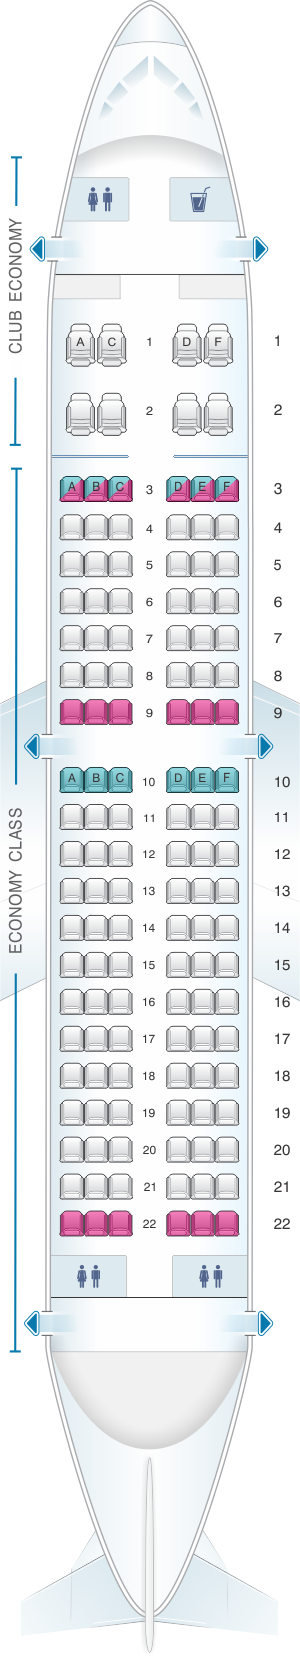 Seat map for Aerolineas Argentinas Boeing B737 700